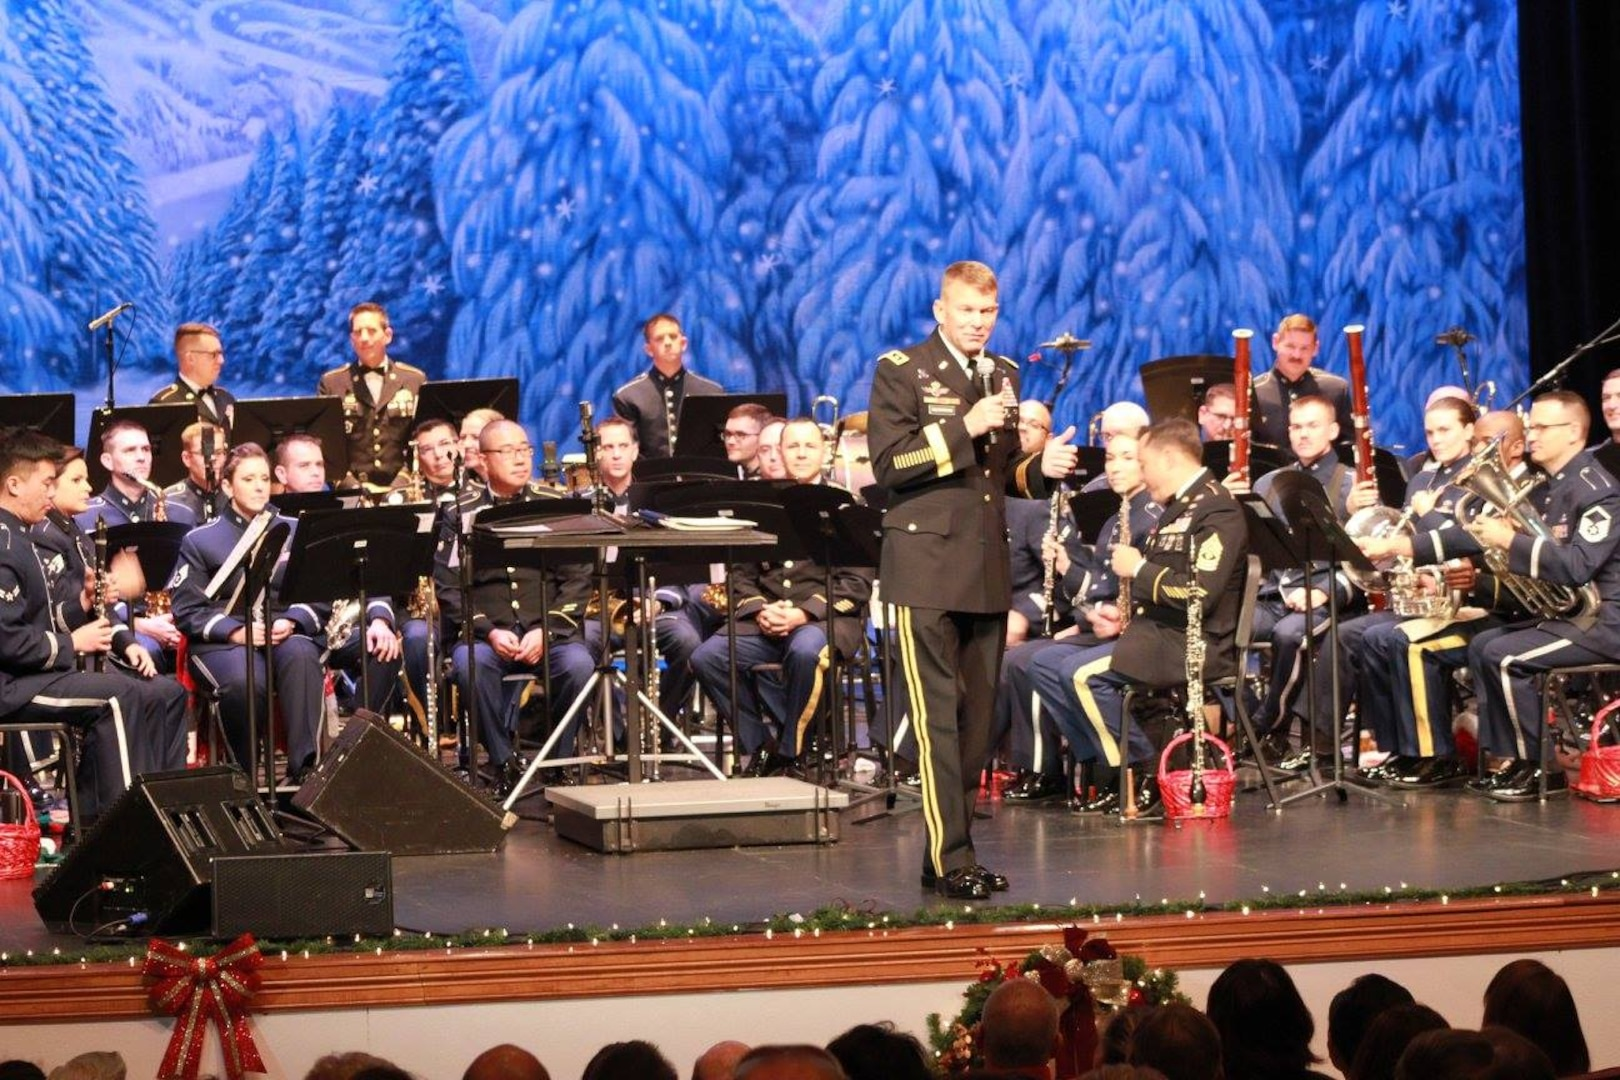 """Lt. Gen. Jeffrey Buchanan, U.S. Army North commanding general, introduces the U.S. Air Force Band of the West and the 323rd Army Band """"Fort Sam's Own"""" as they team up for a """"Holiday in Red, White and Blue"""" concert Dec. 9, 2017 at the Edgewood Performing Arts Center, 402 Lance St., in San Antonio. The annual performance is free and open to the public and is a holiday tradition."""